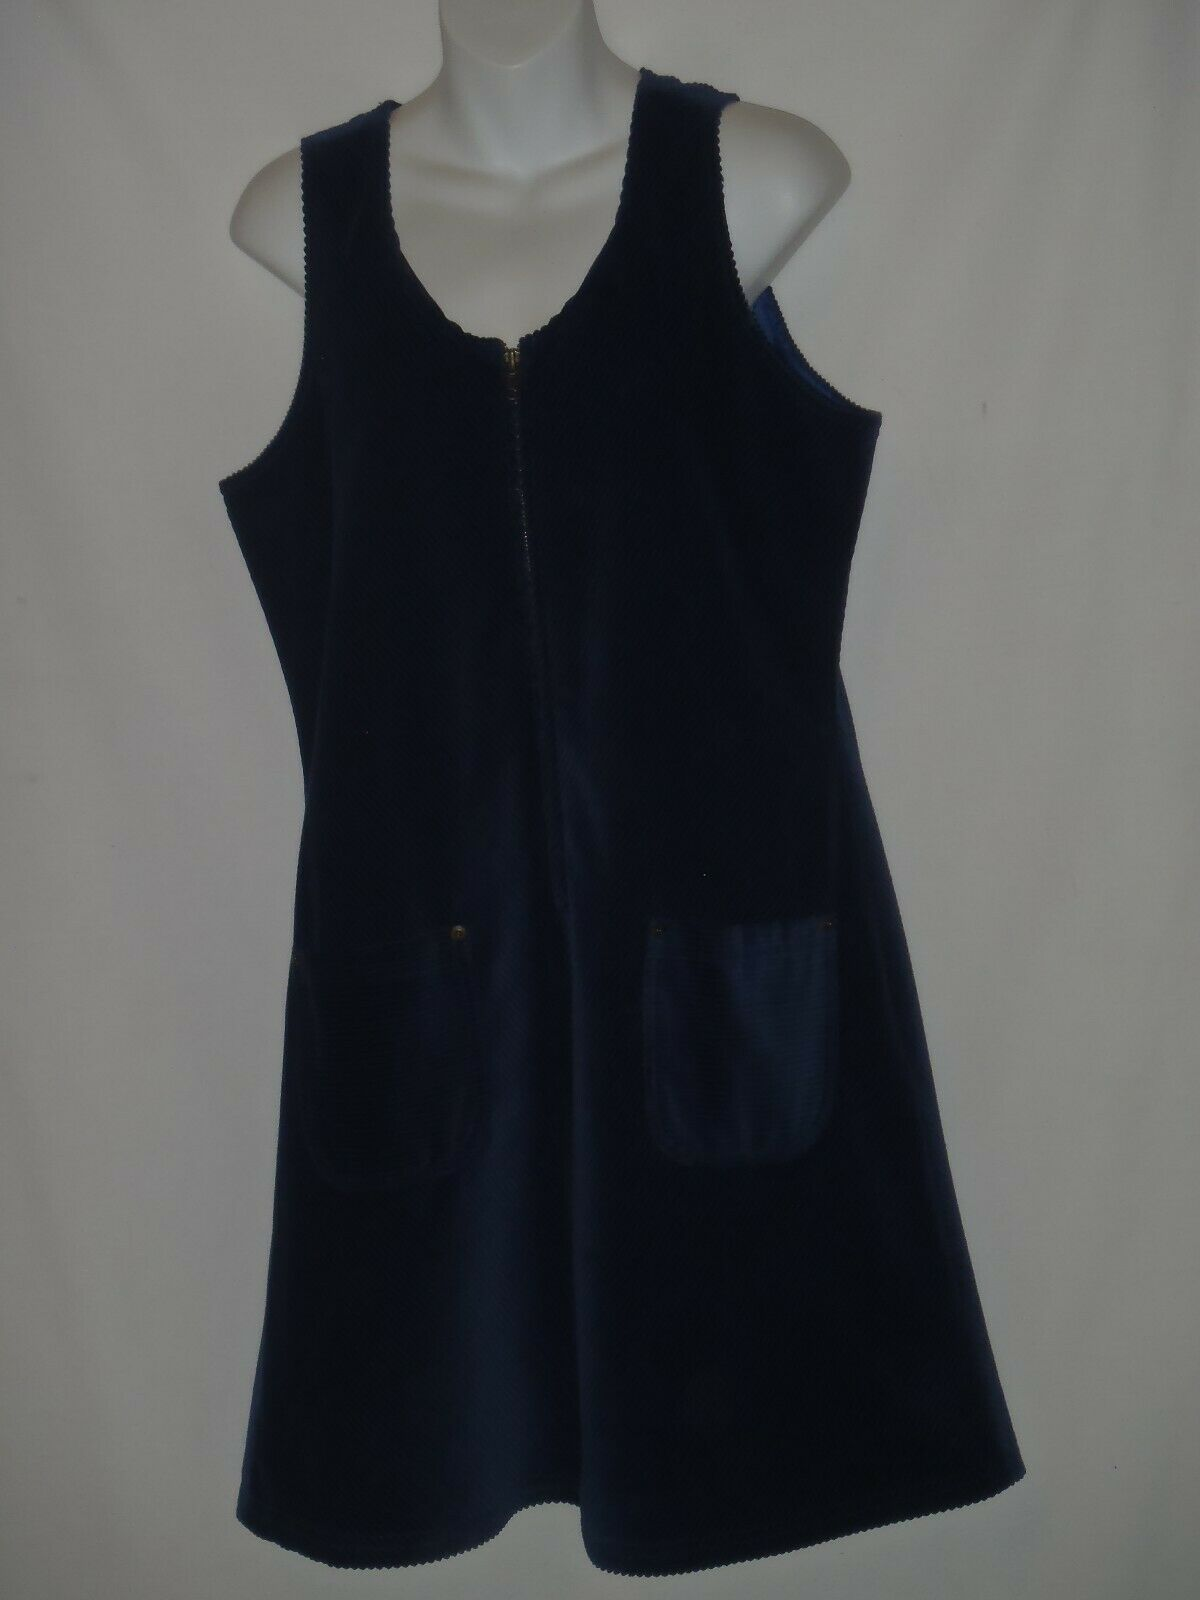 Primary image for Size MEDIUM M Hanna Andersson Blue Corduroy Jumper Dress Pockets Womens